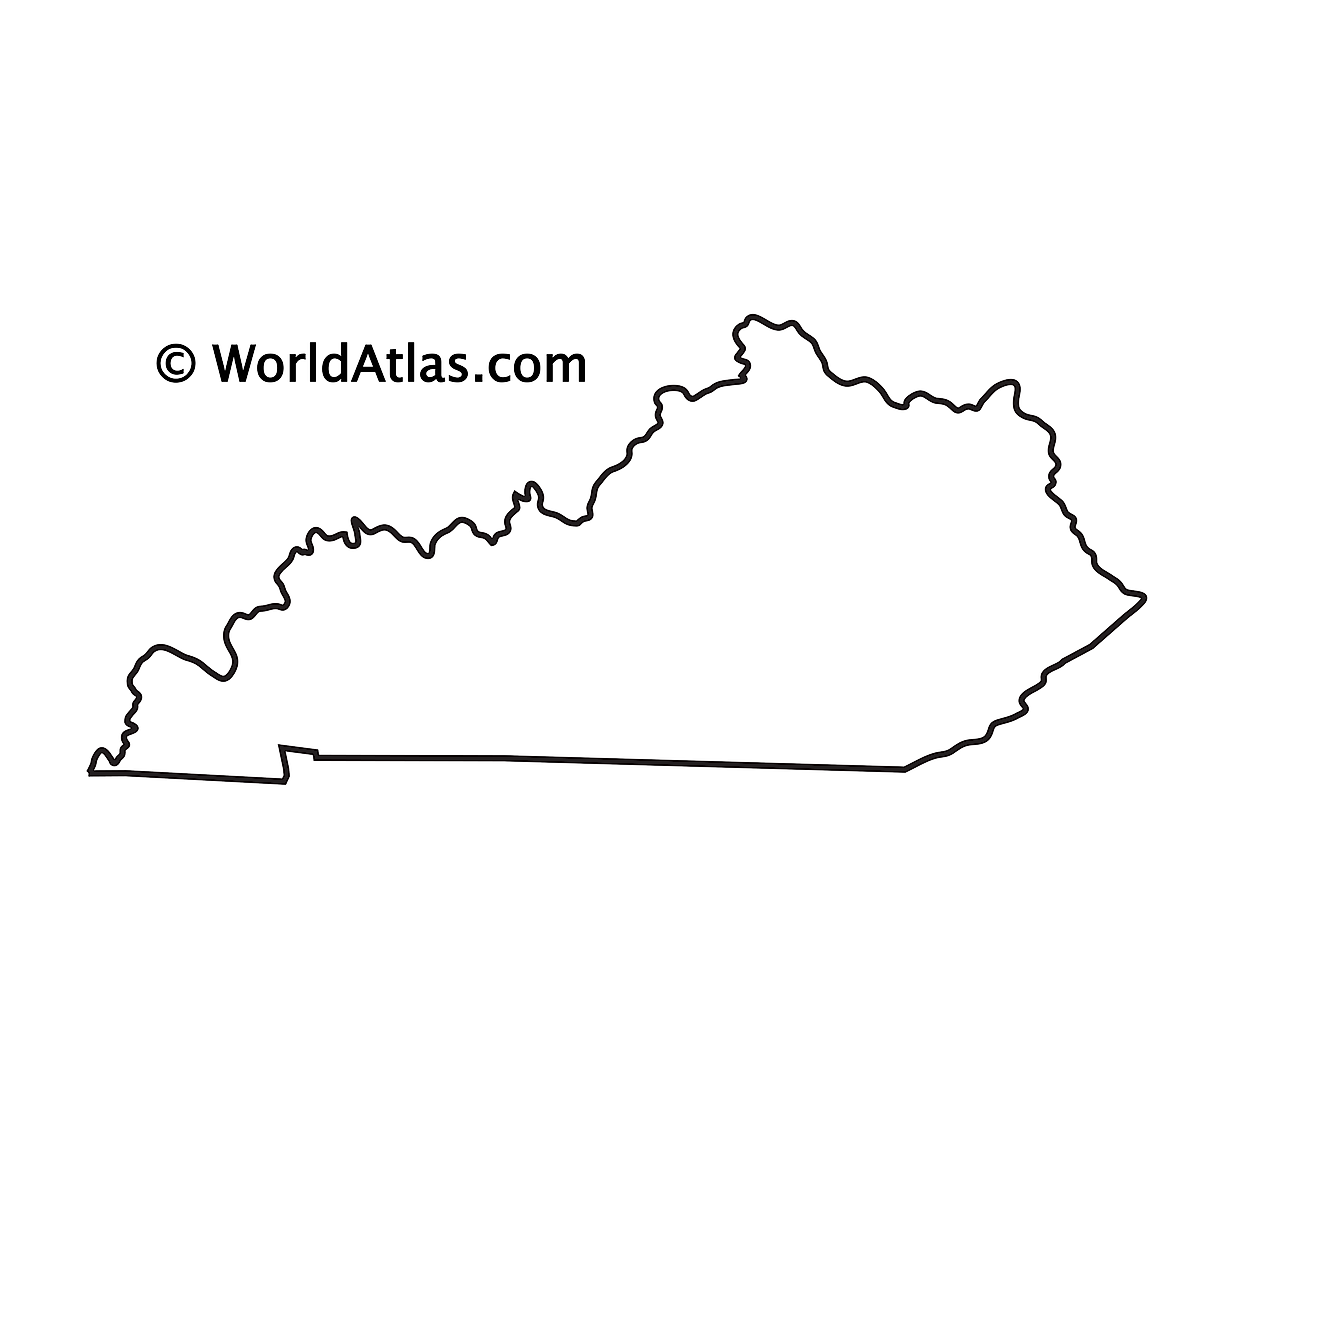 Blank outline map of Kentucky